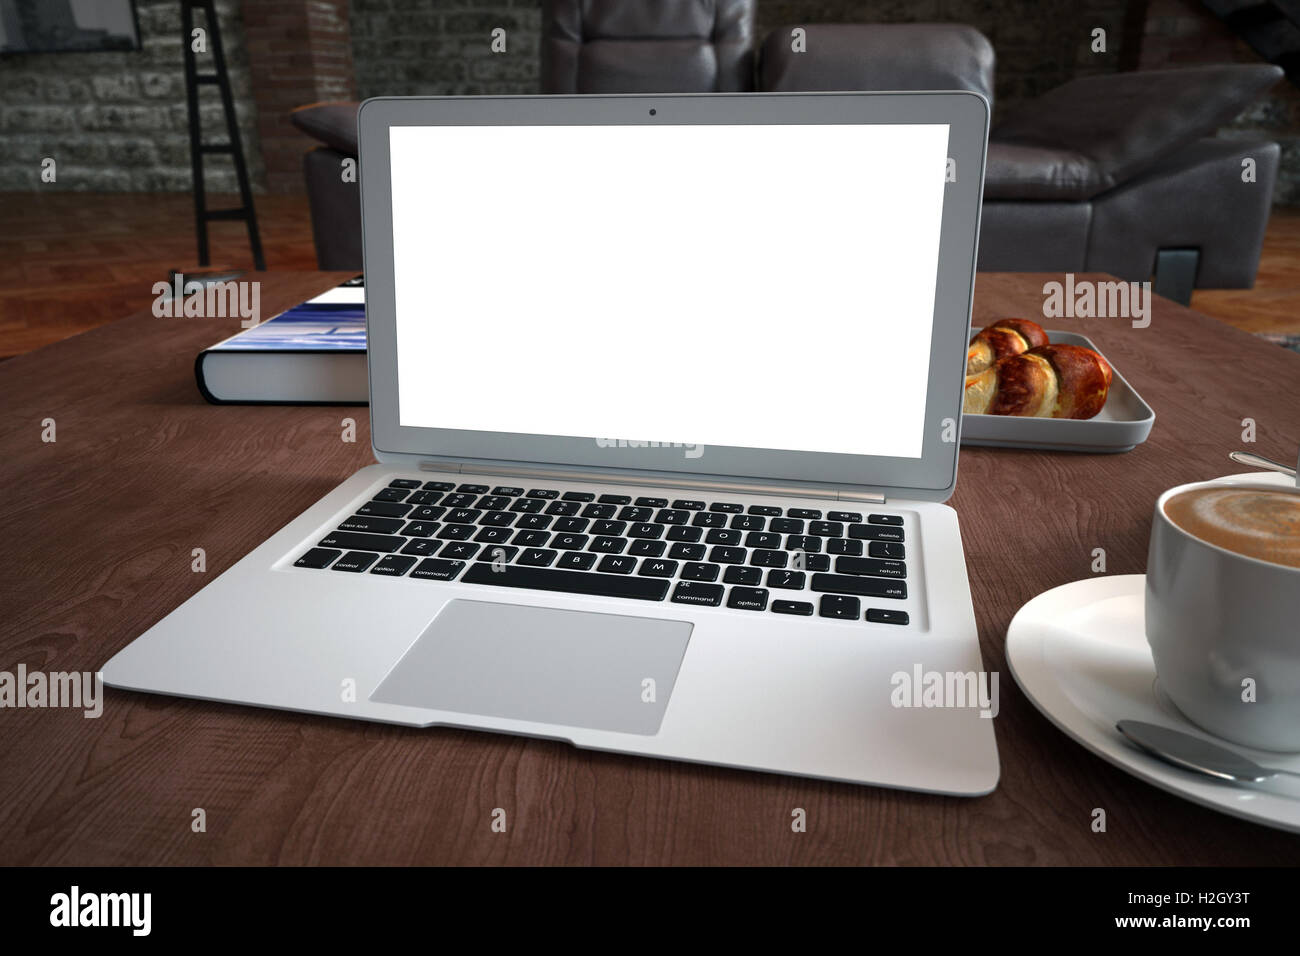 Laptop on desk, with blank screen. 3D illustration. - Stock Image